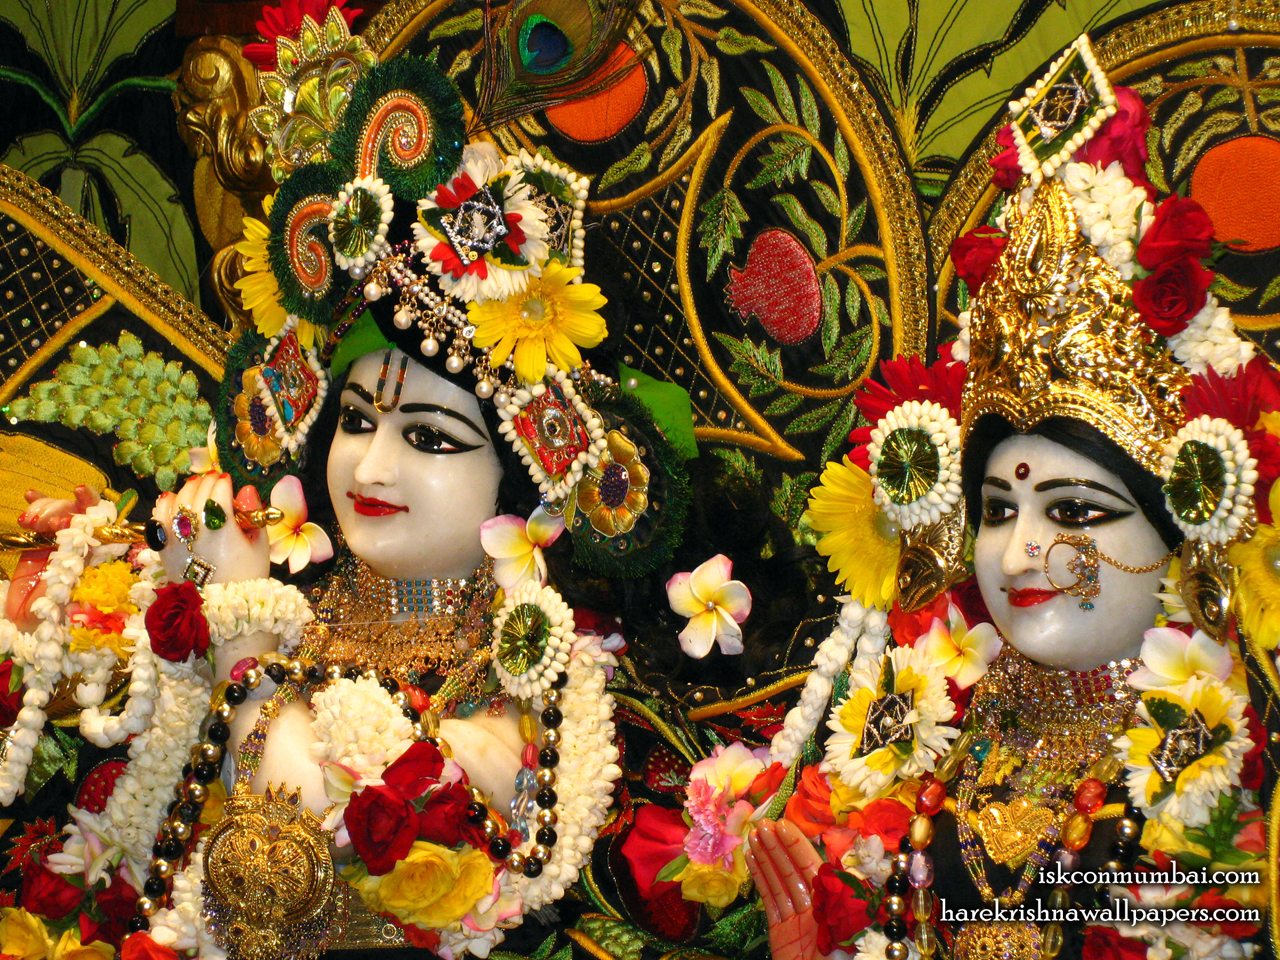 Sri Sri Radha Rasabihari Close up Wallpaper (018) Size 1280x960 Download